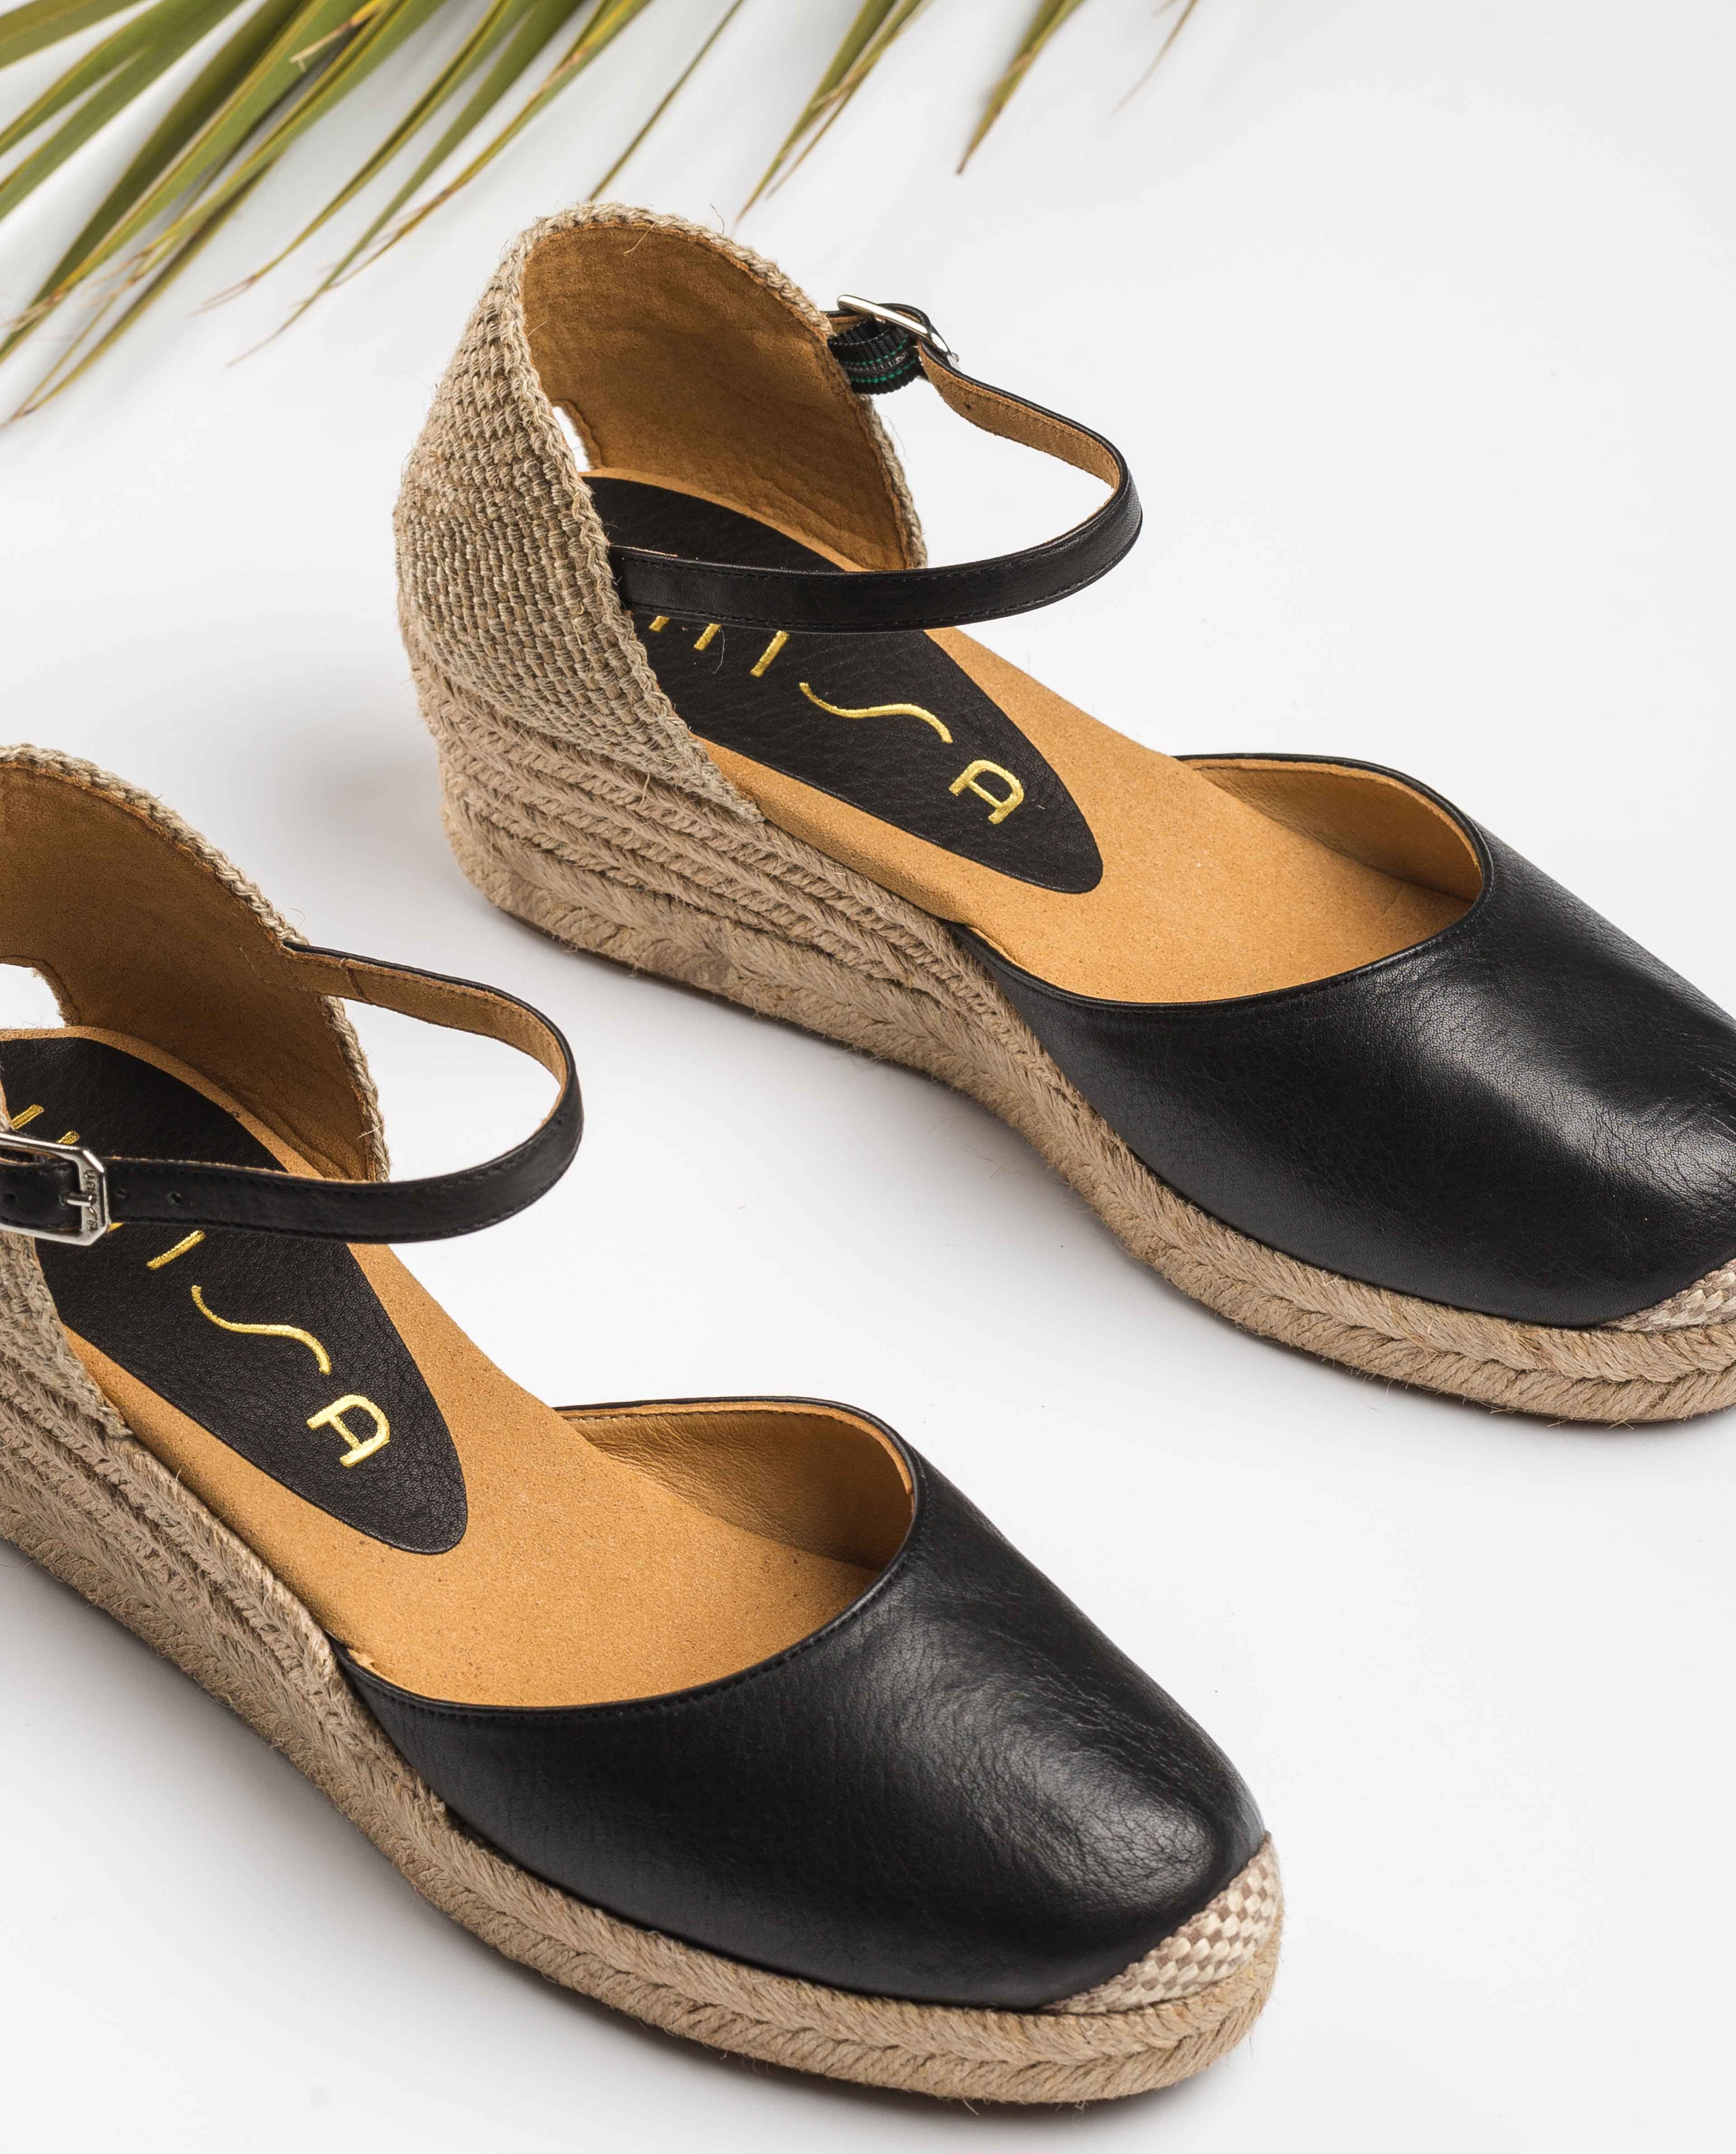 Low wedge leather espadrilles